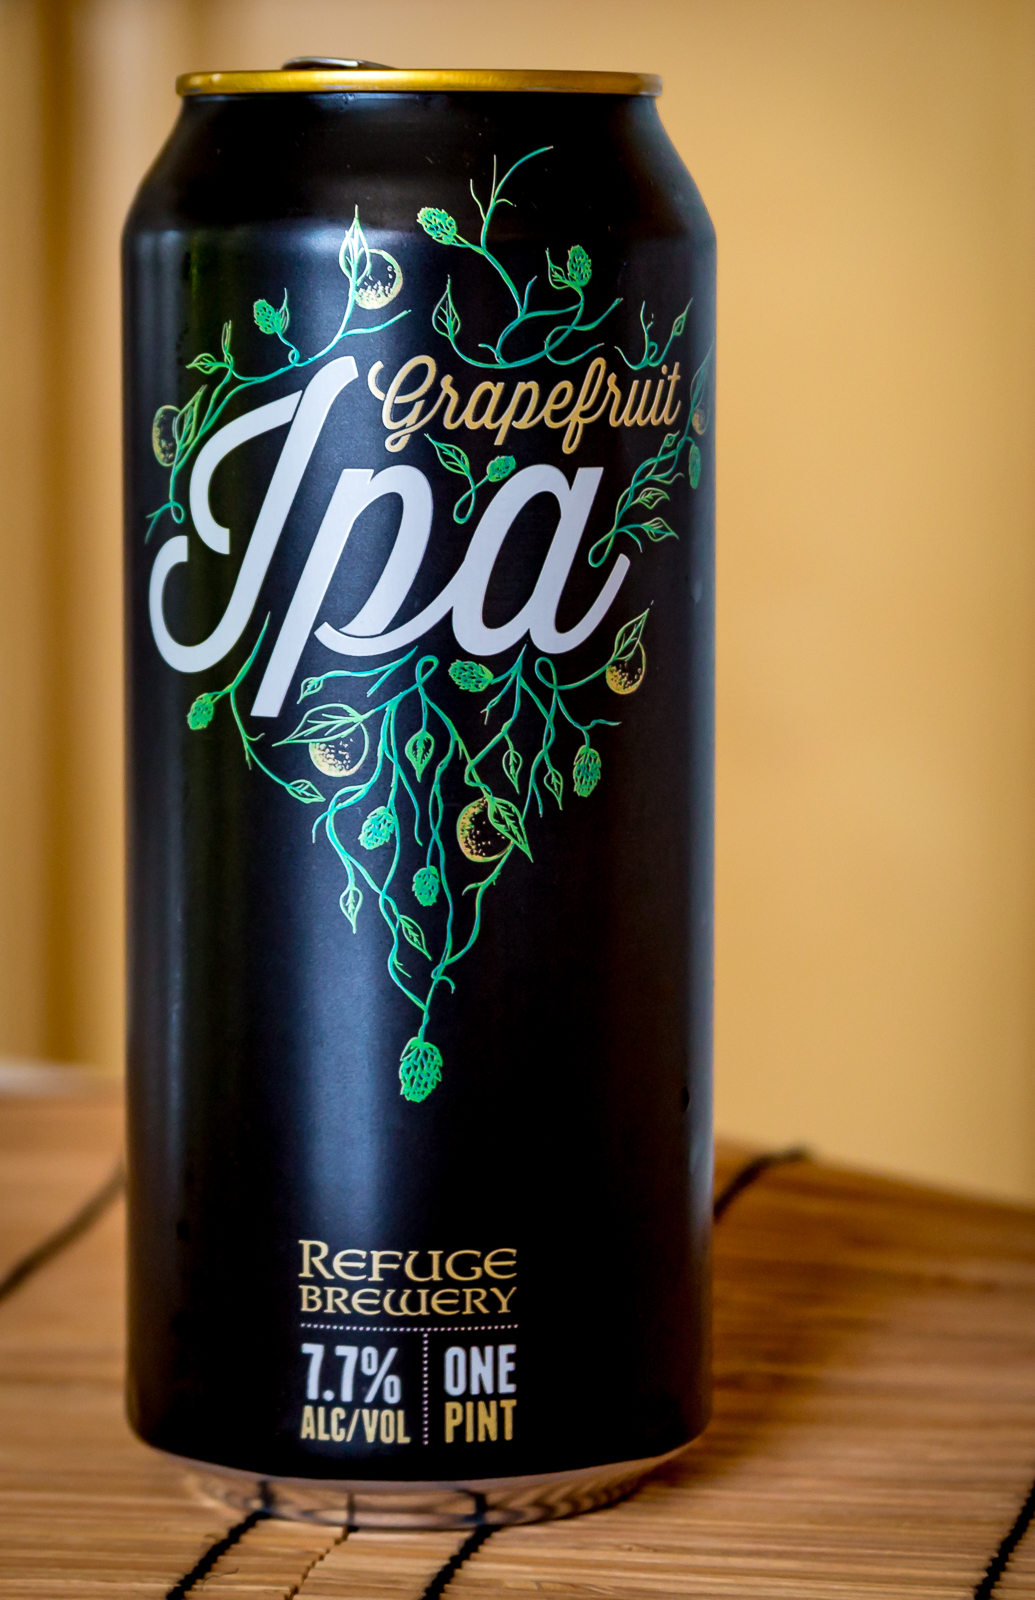 Refuge Brewery - Grapefruit IPA